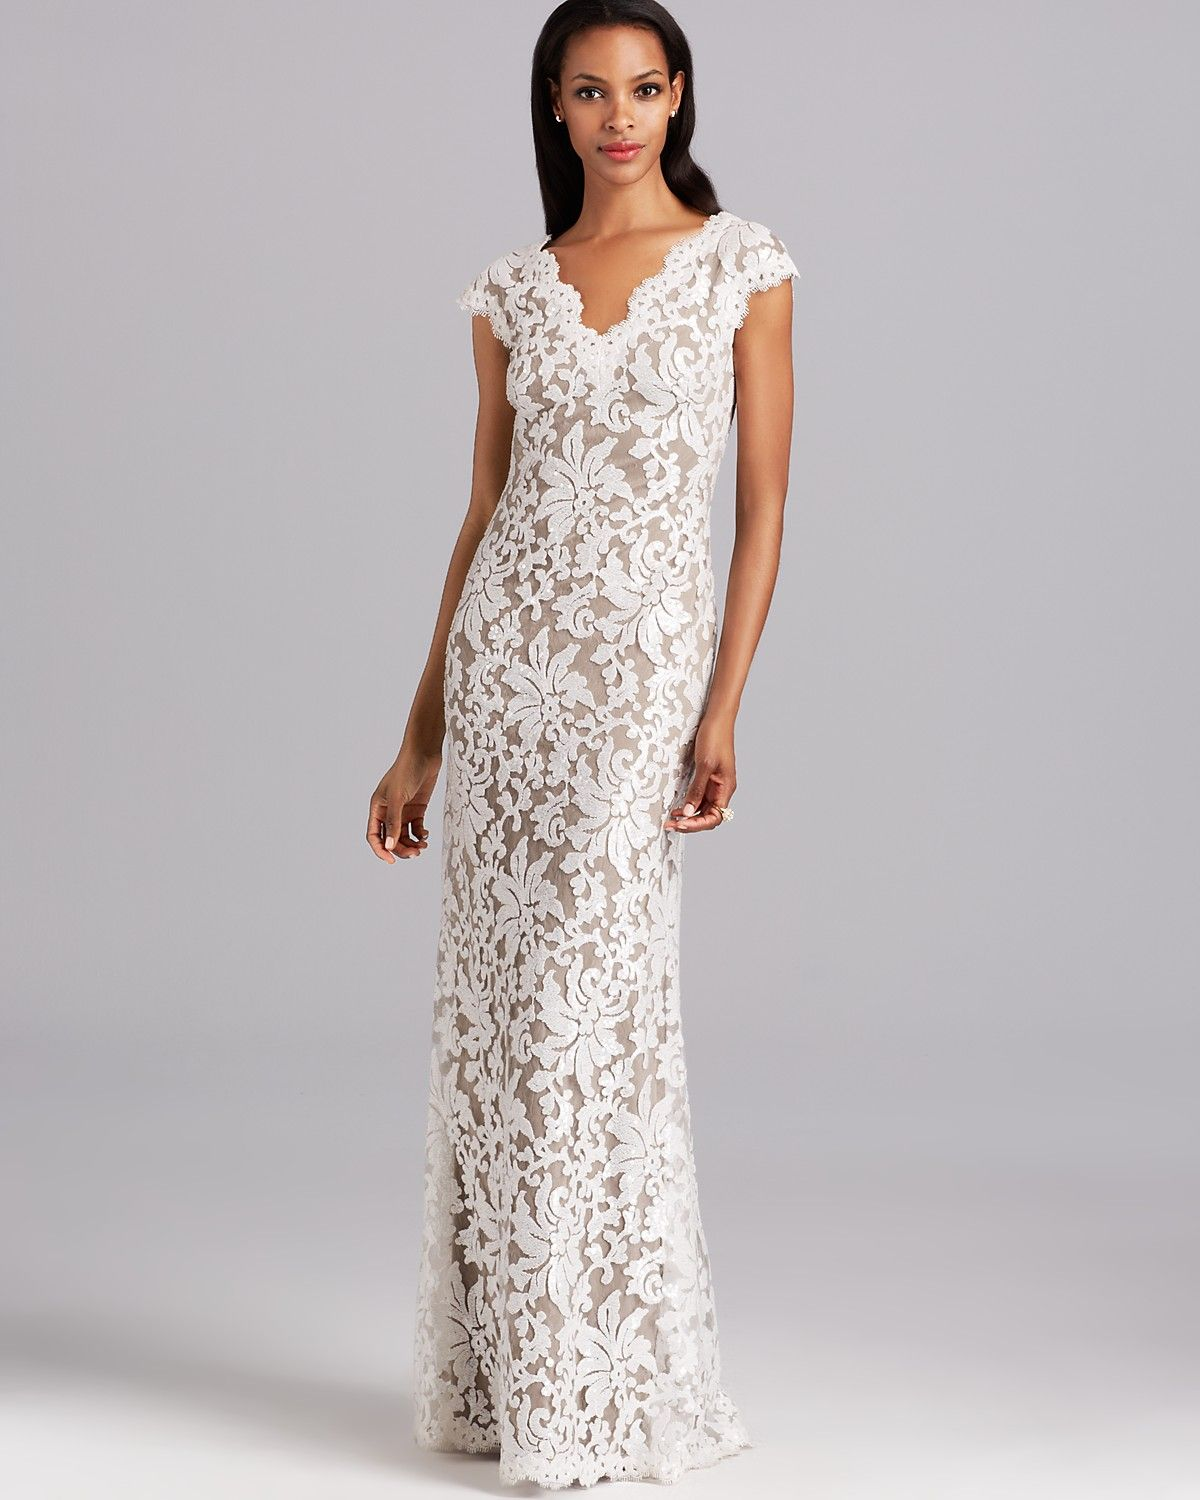 Tadashi Shoji Gown V Neck Cap Sleeve Two Tone Women Bloomingdale S Wedding Dresses Under 500 Tadashi Shoji Wedding Dress Gowns Dresses